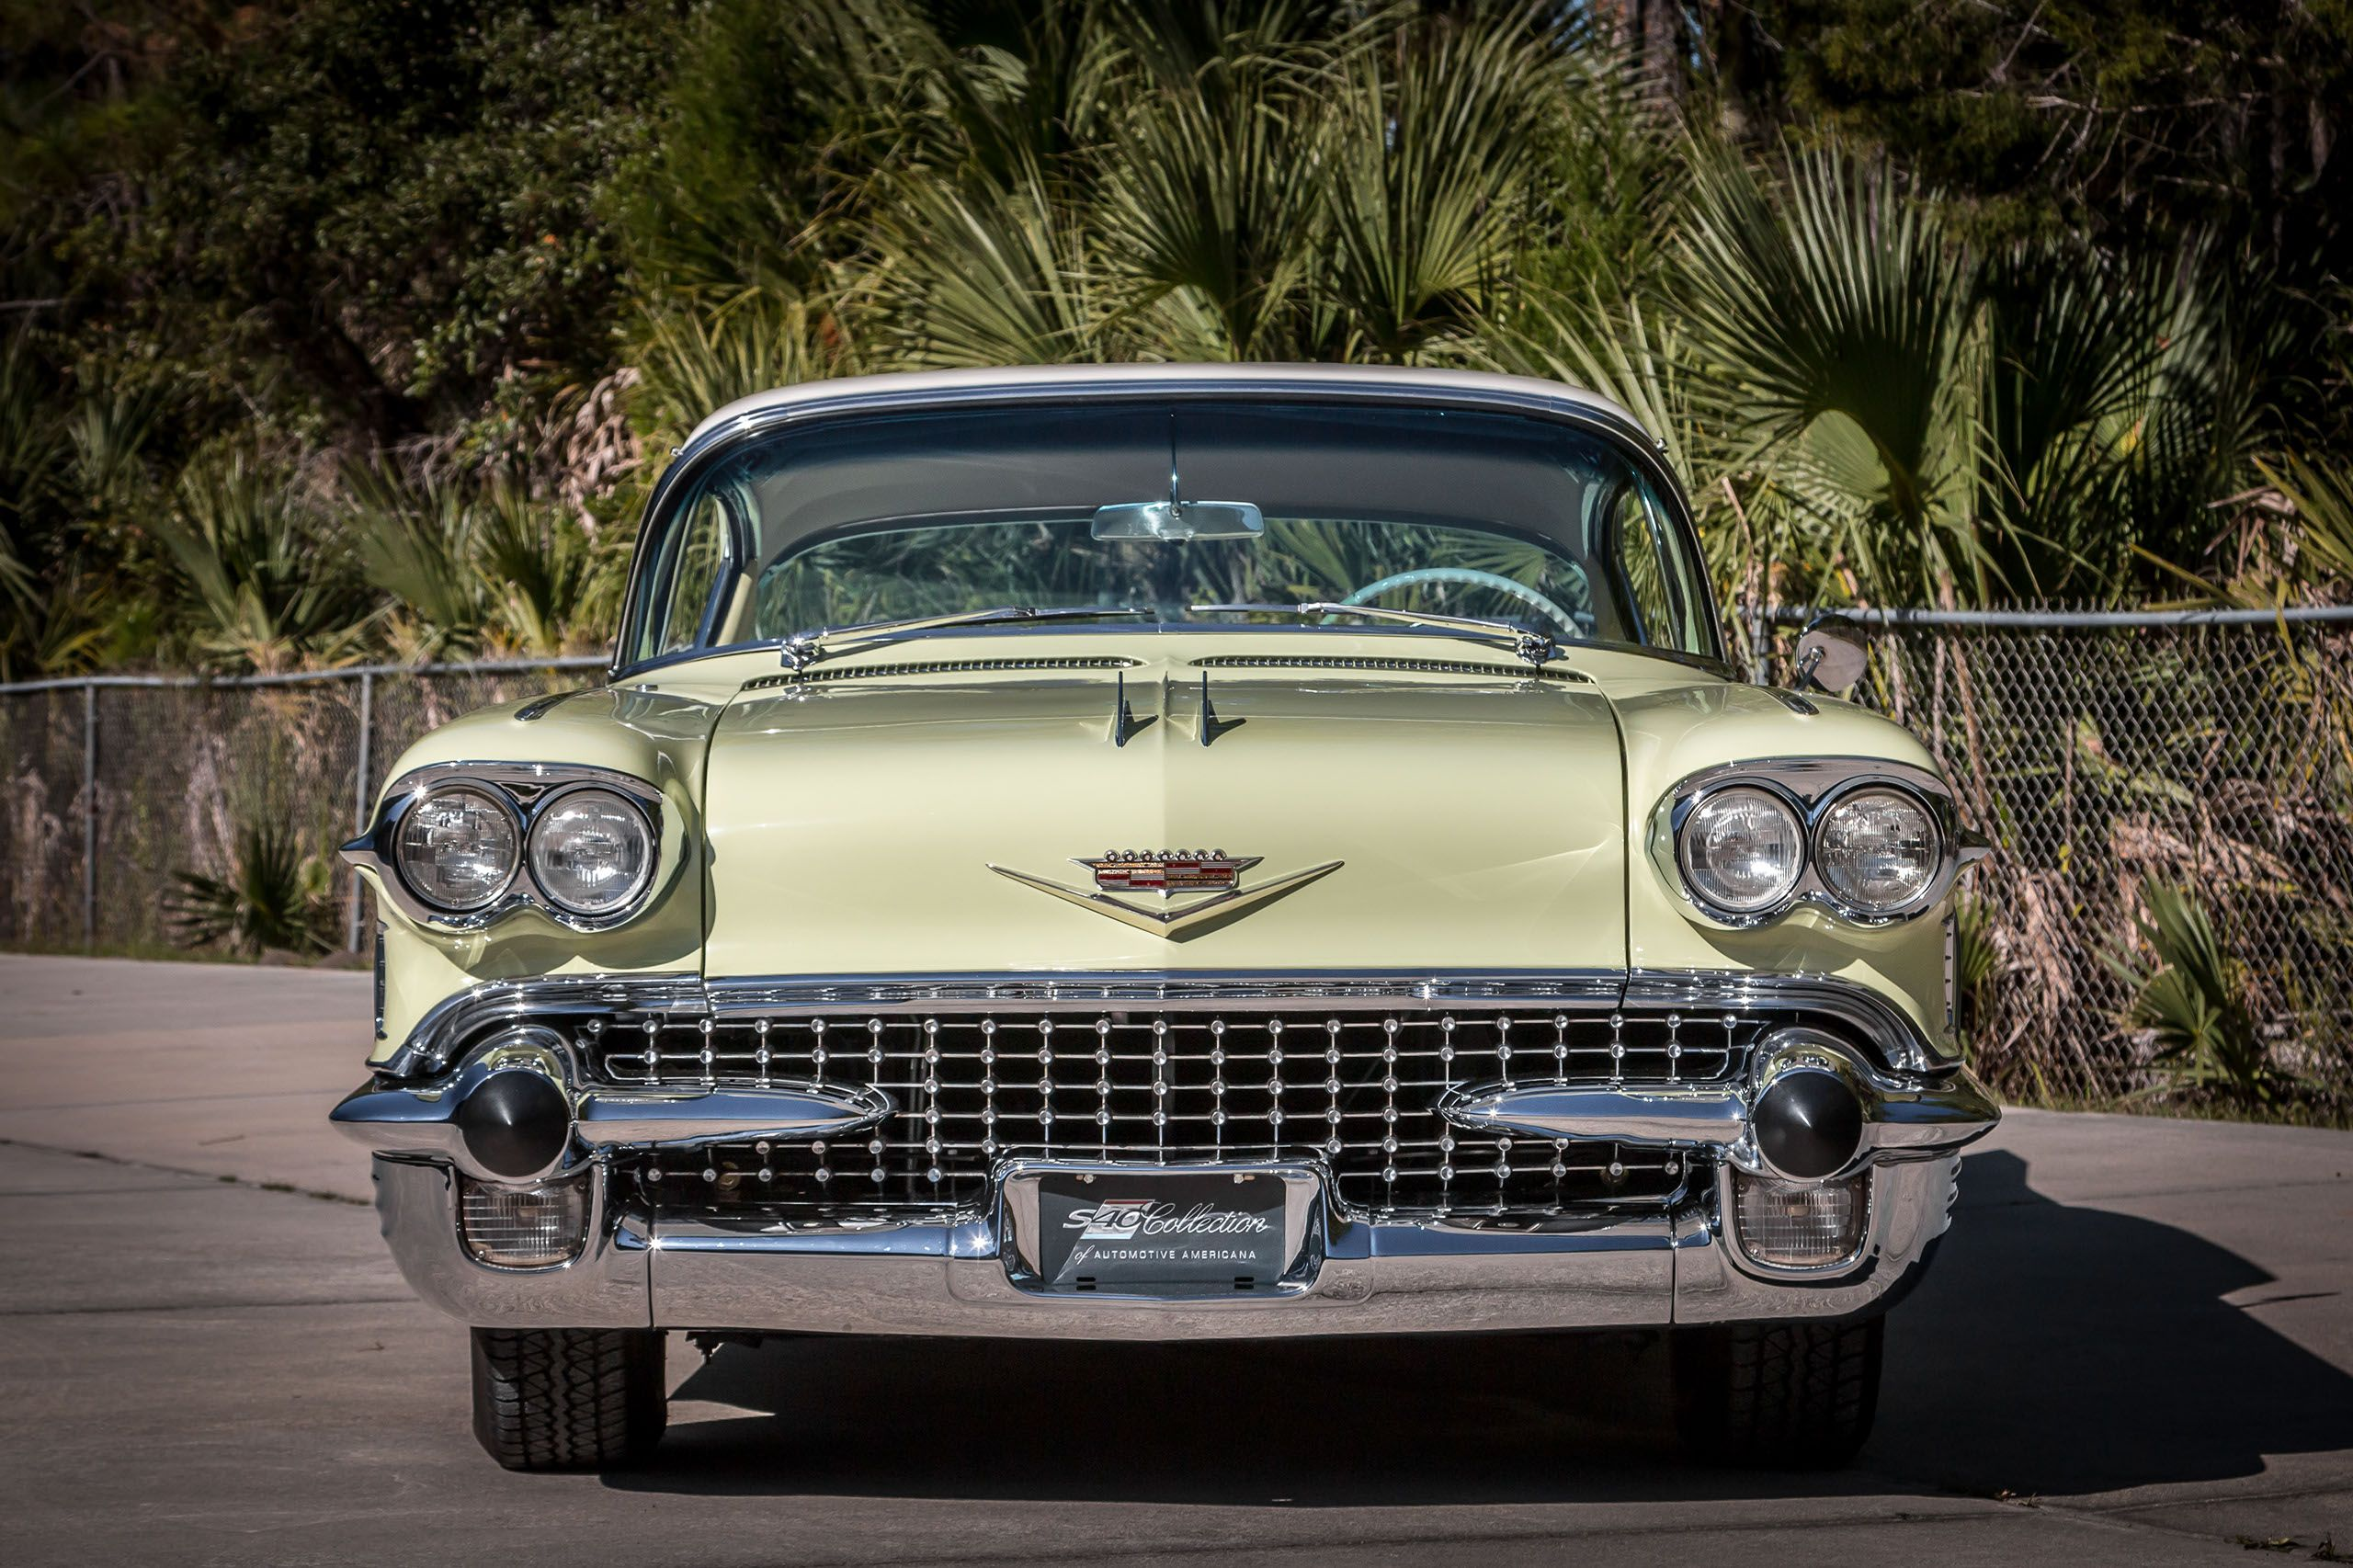 Cool Review About 1968 Cadillac